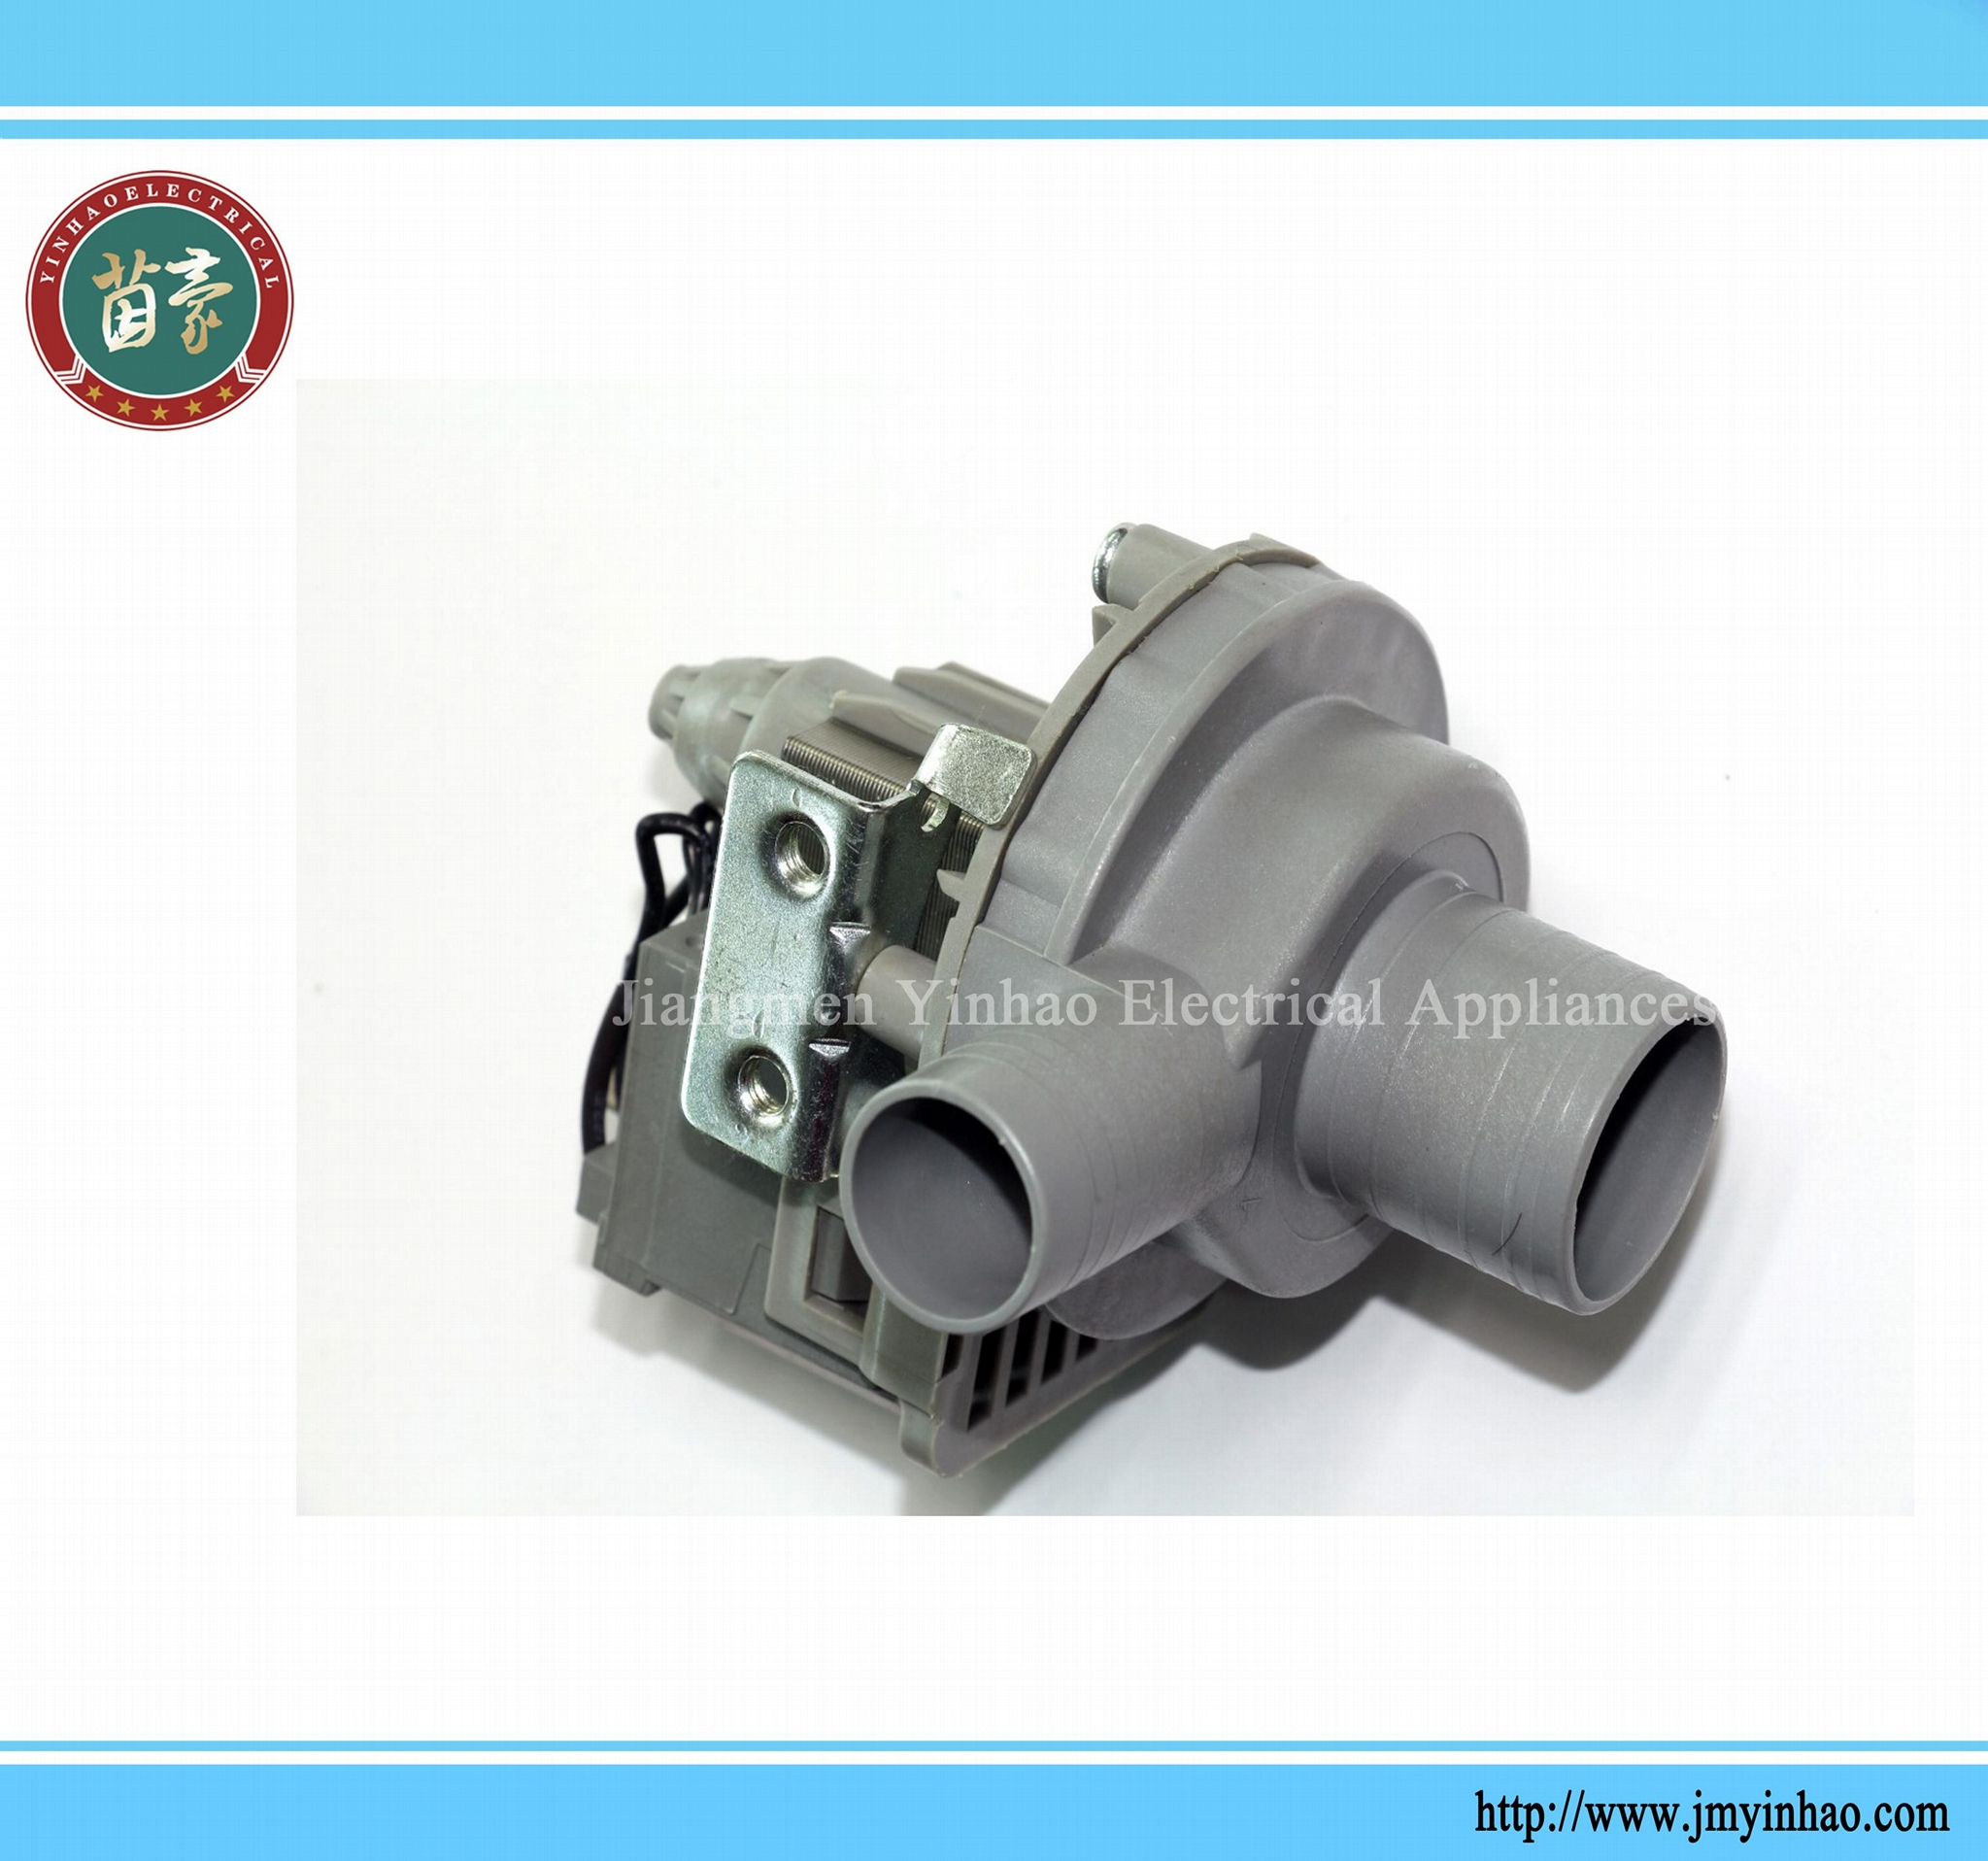 drain pump assembly for washing machine 1